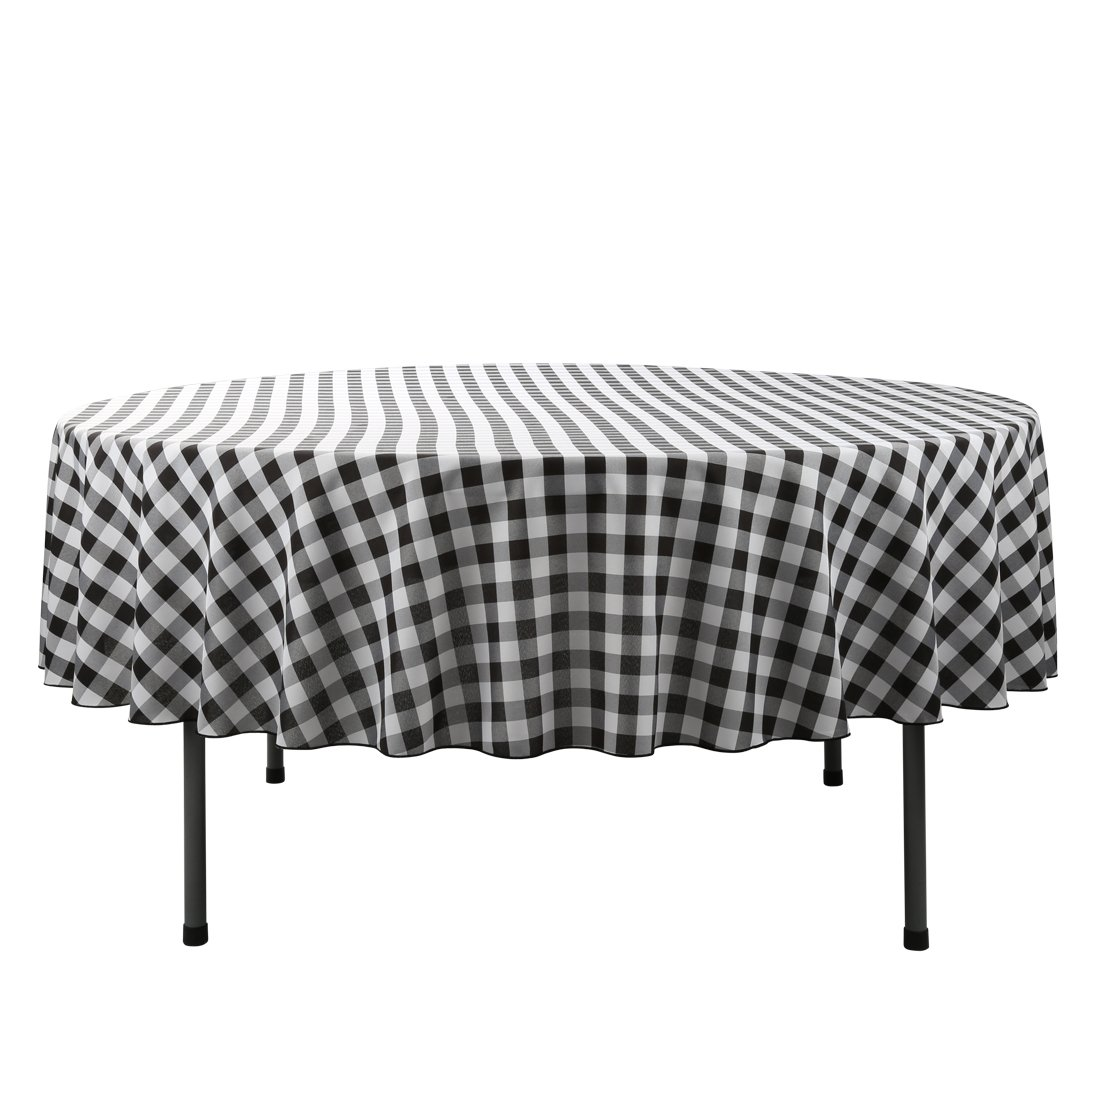 tex round tablecloth inch black white checked accent table cloth for circular washable polyester home kitchen southern enterprises mirage mirrored console silver carpet tile trim